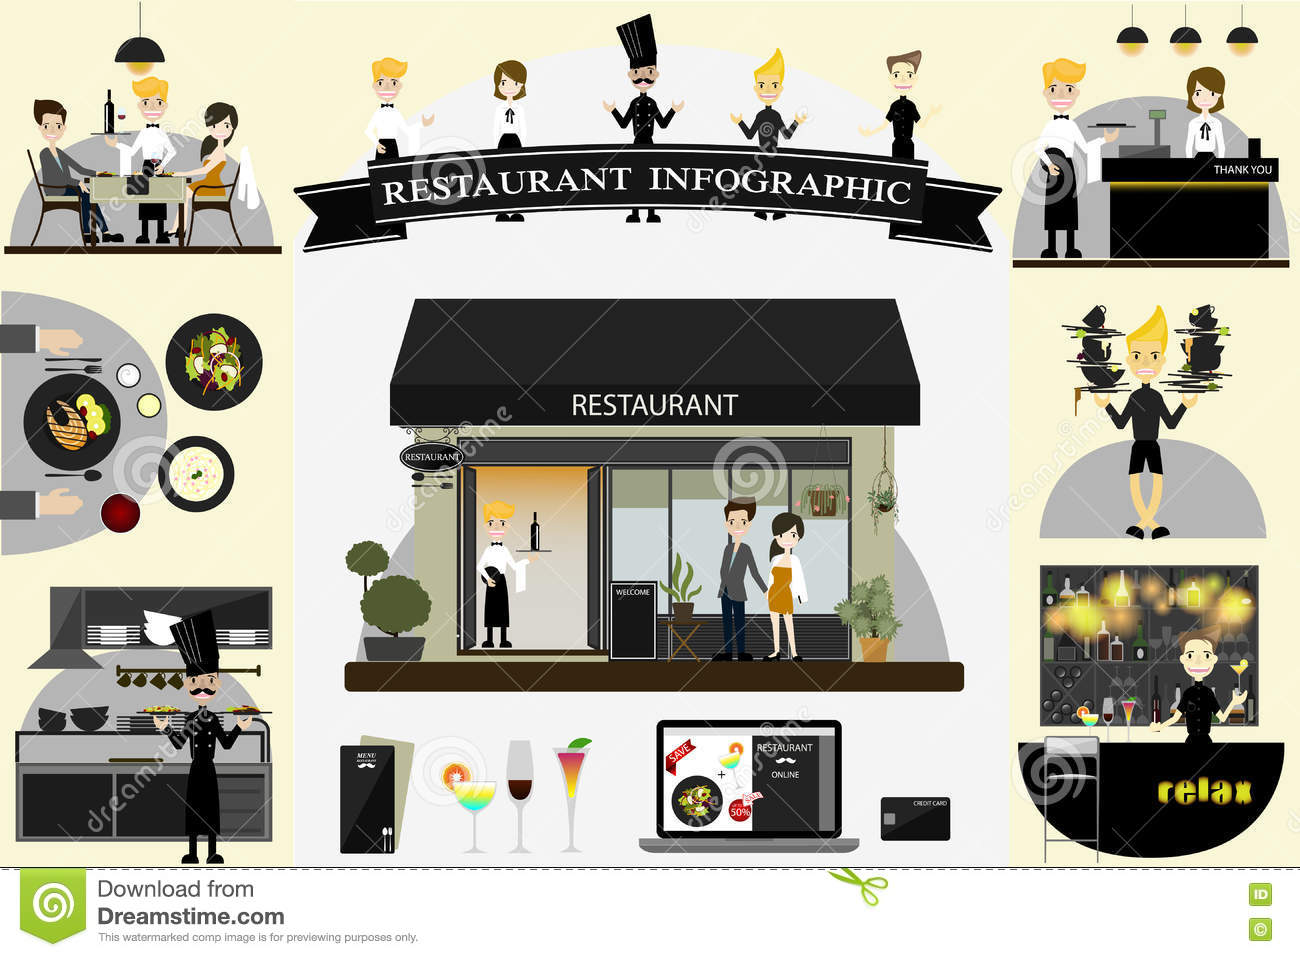 Restaurant info graphic flat design vector illustration